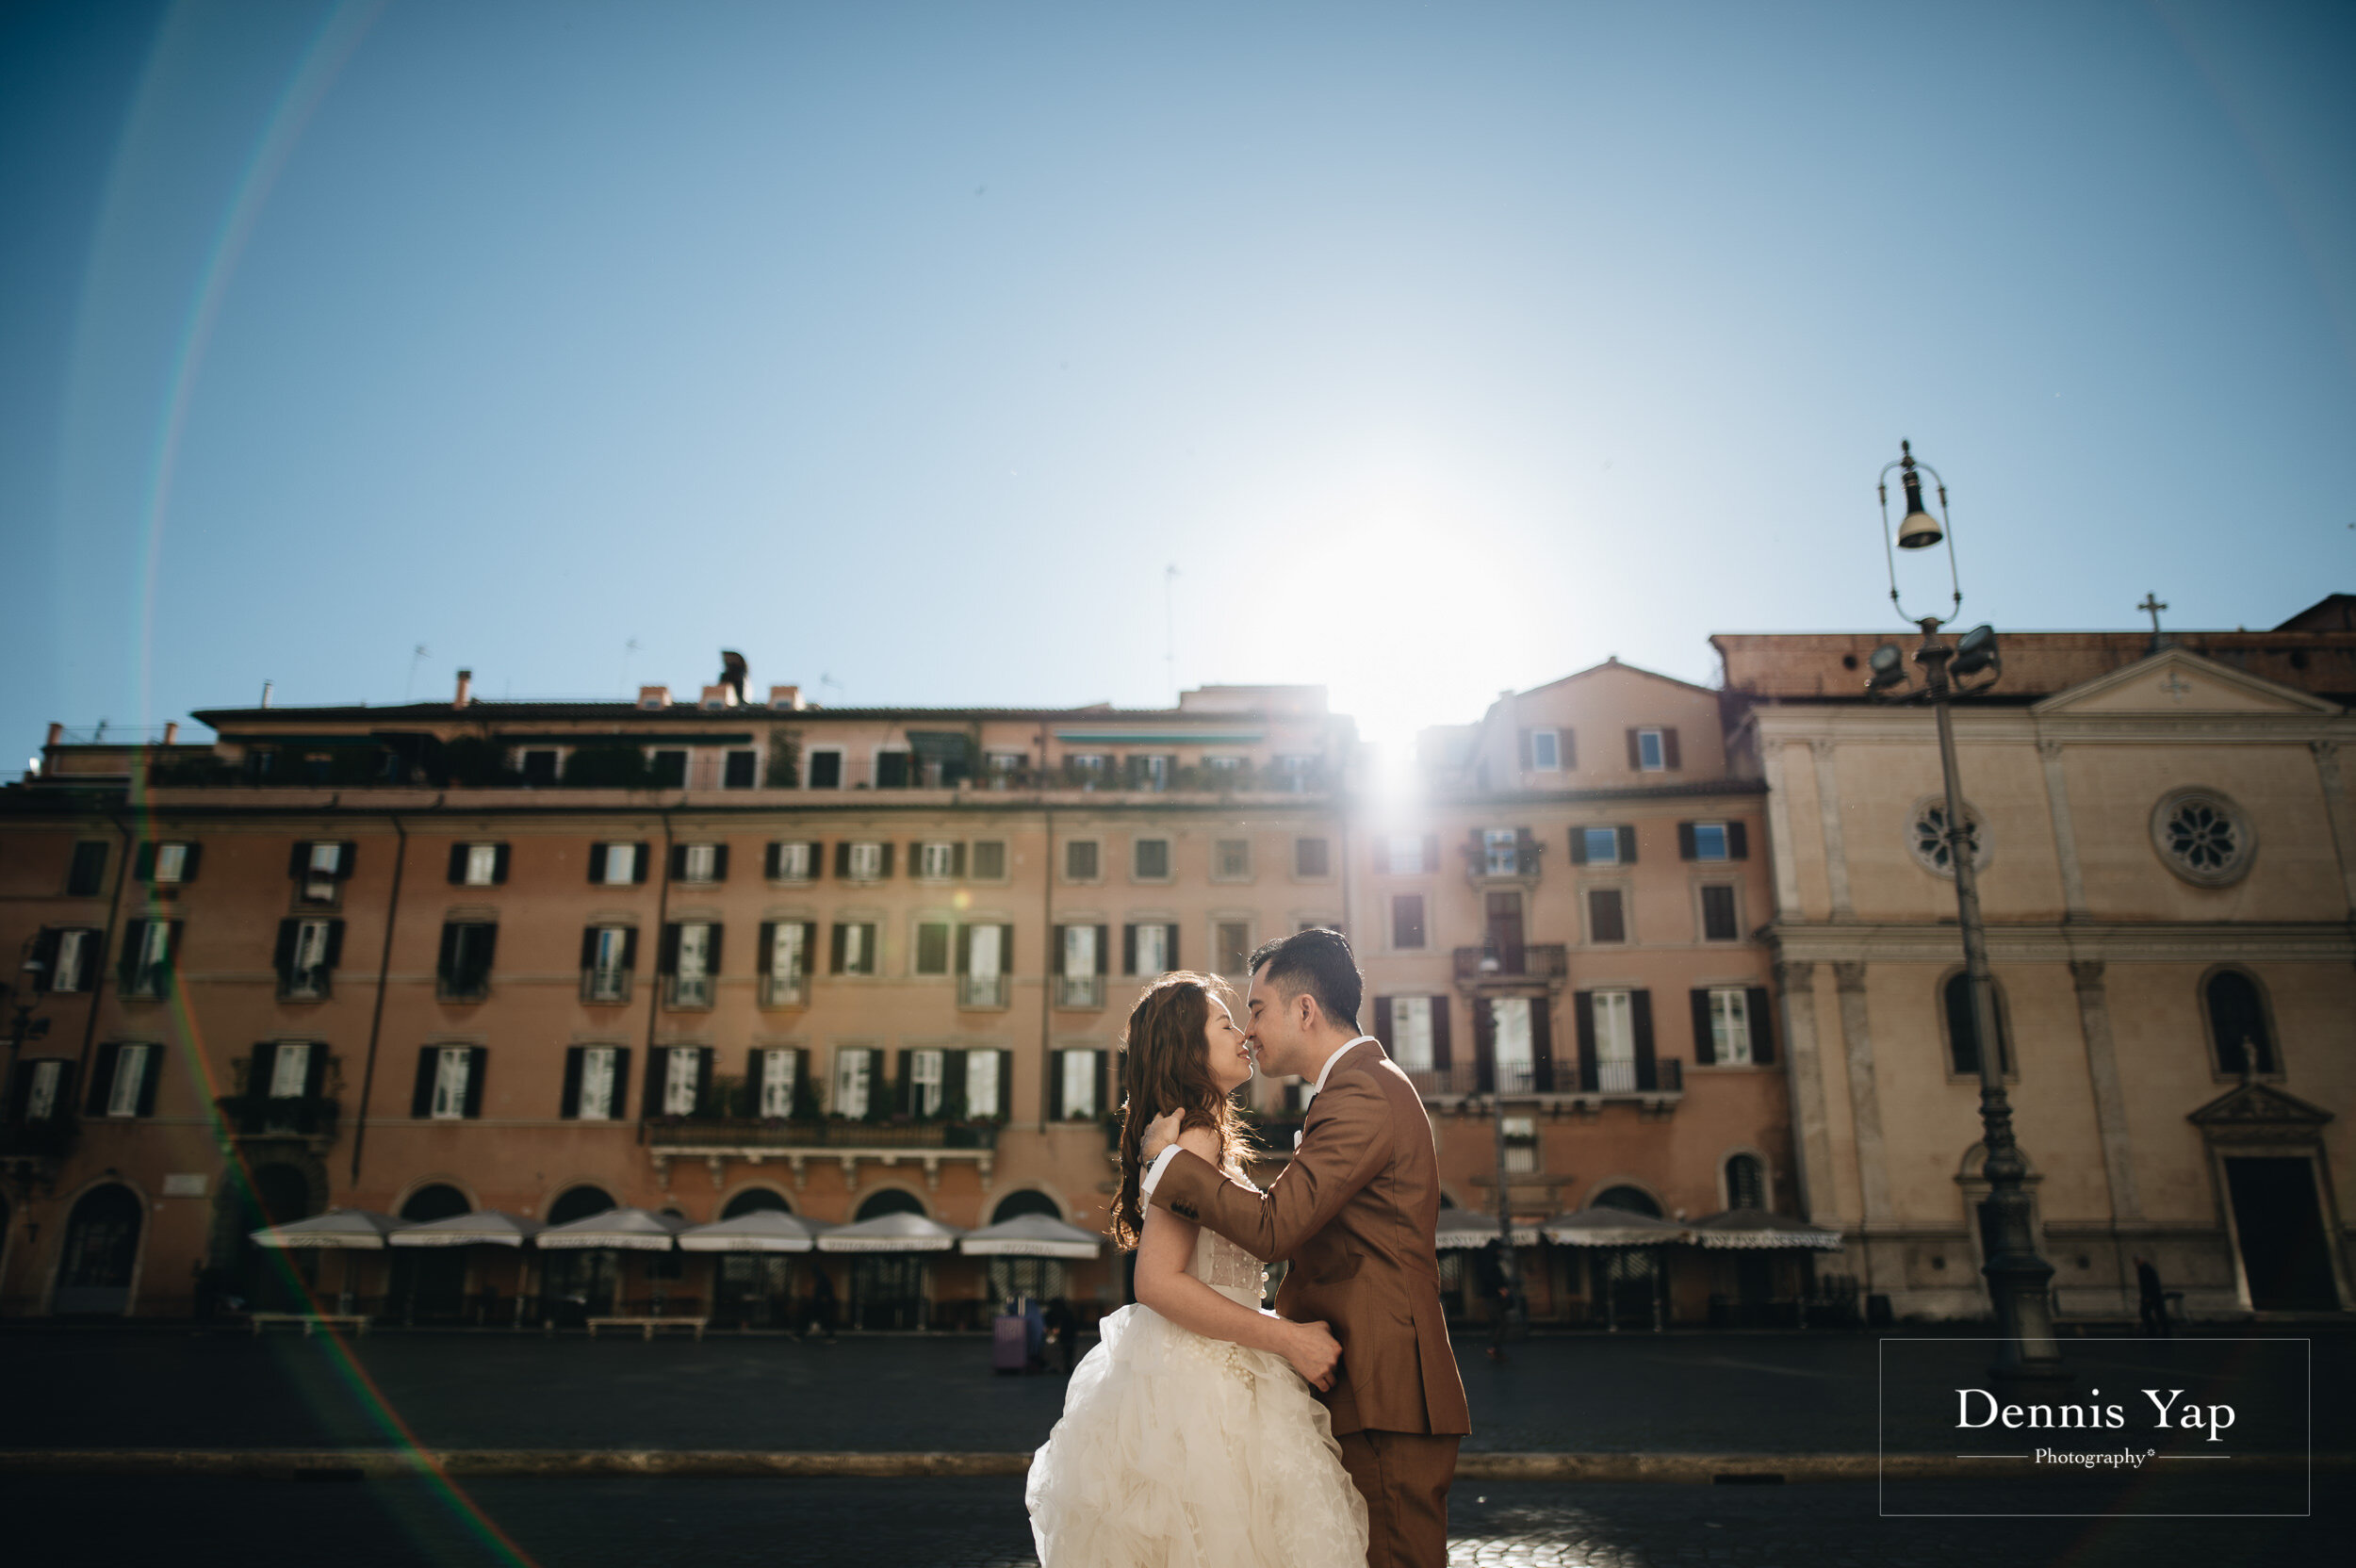 benny alicia pre wedding rome dennis yap photography classic beloved style candid natural-114.jpg